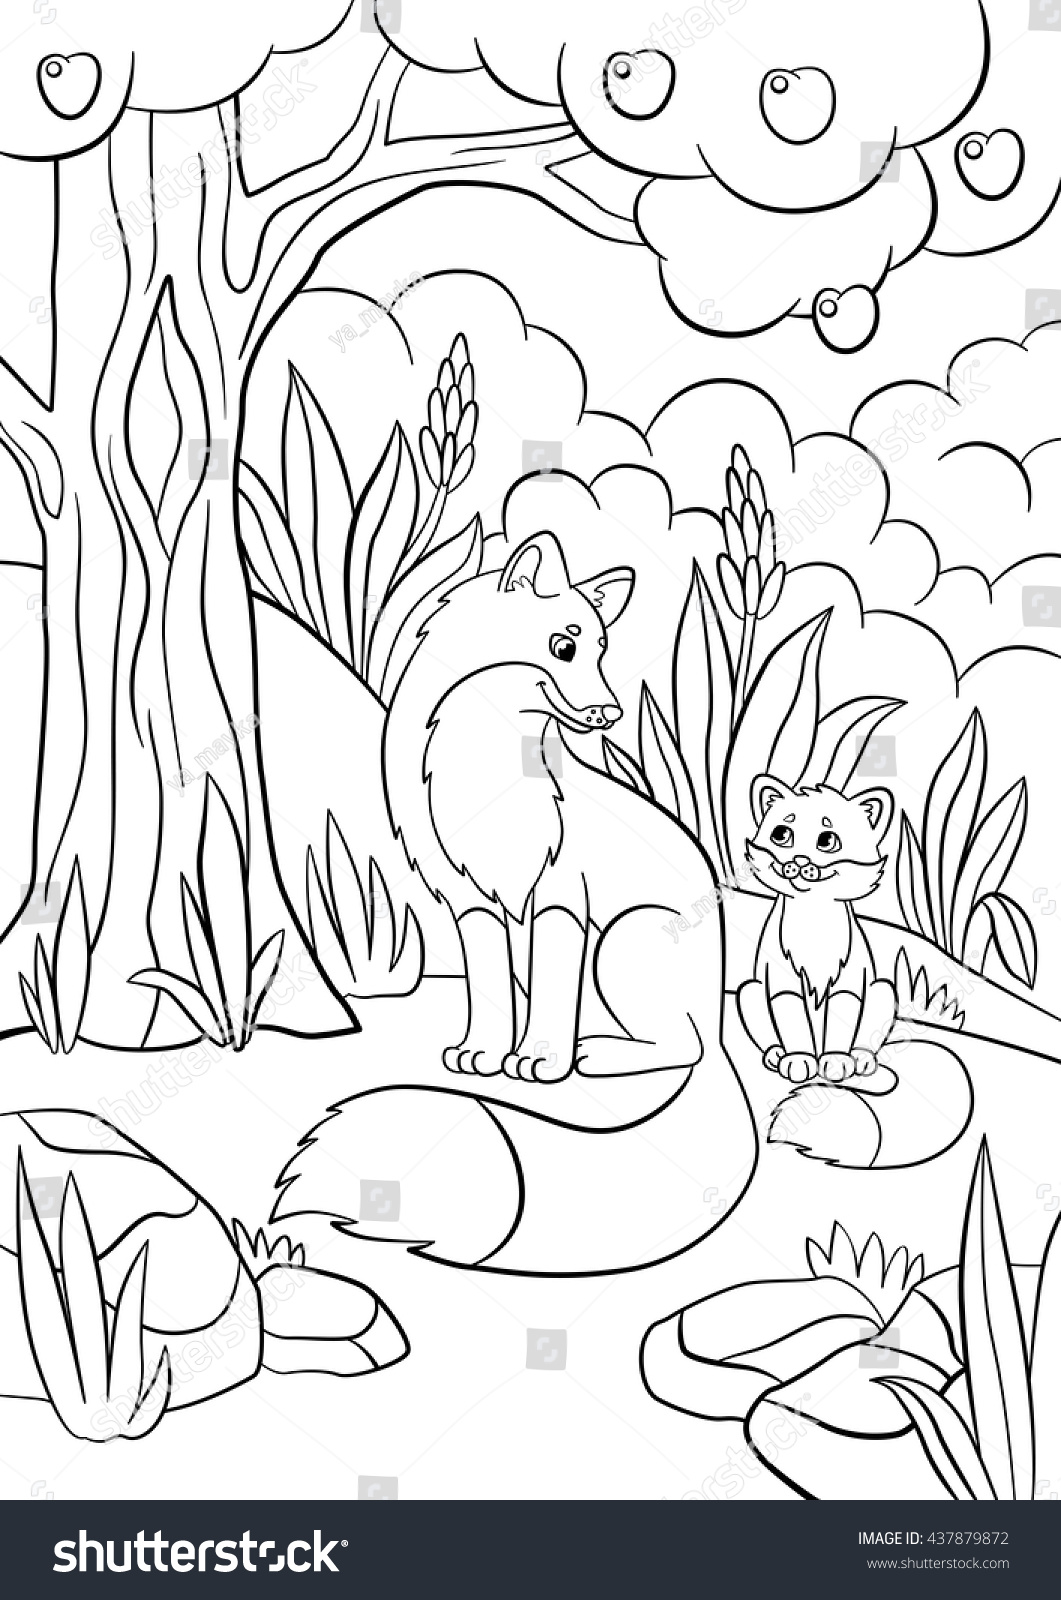 1061x1600 Energy Baby Fox Coloring Pages Wild Animals Mother Stock Vector